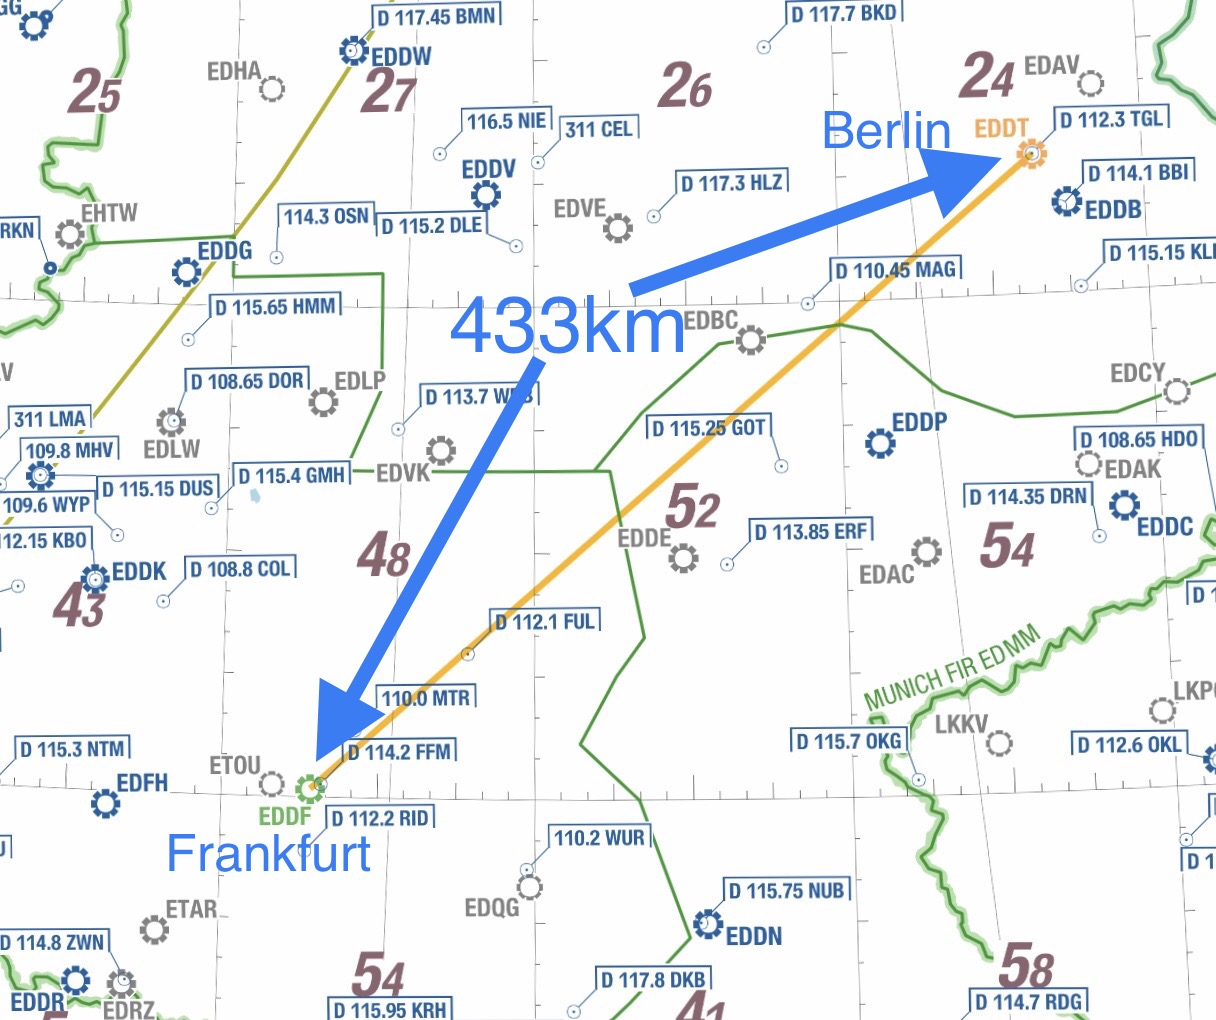 Frankfurt-Berlin direct routing is 433km